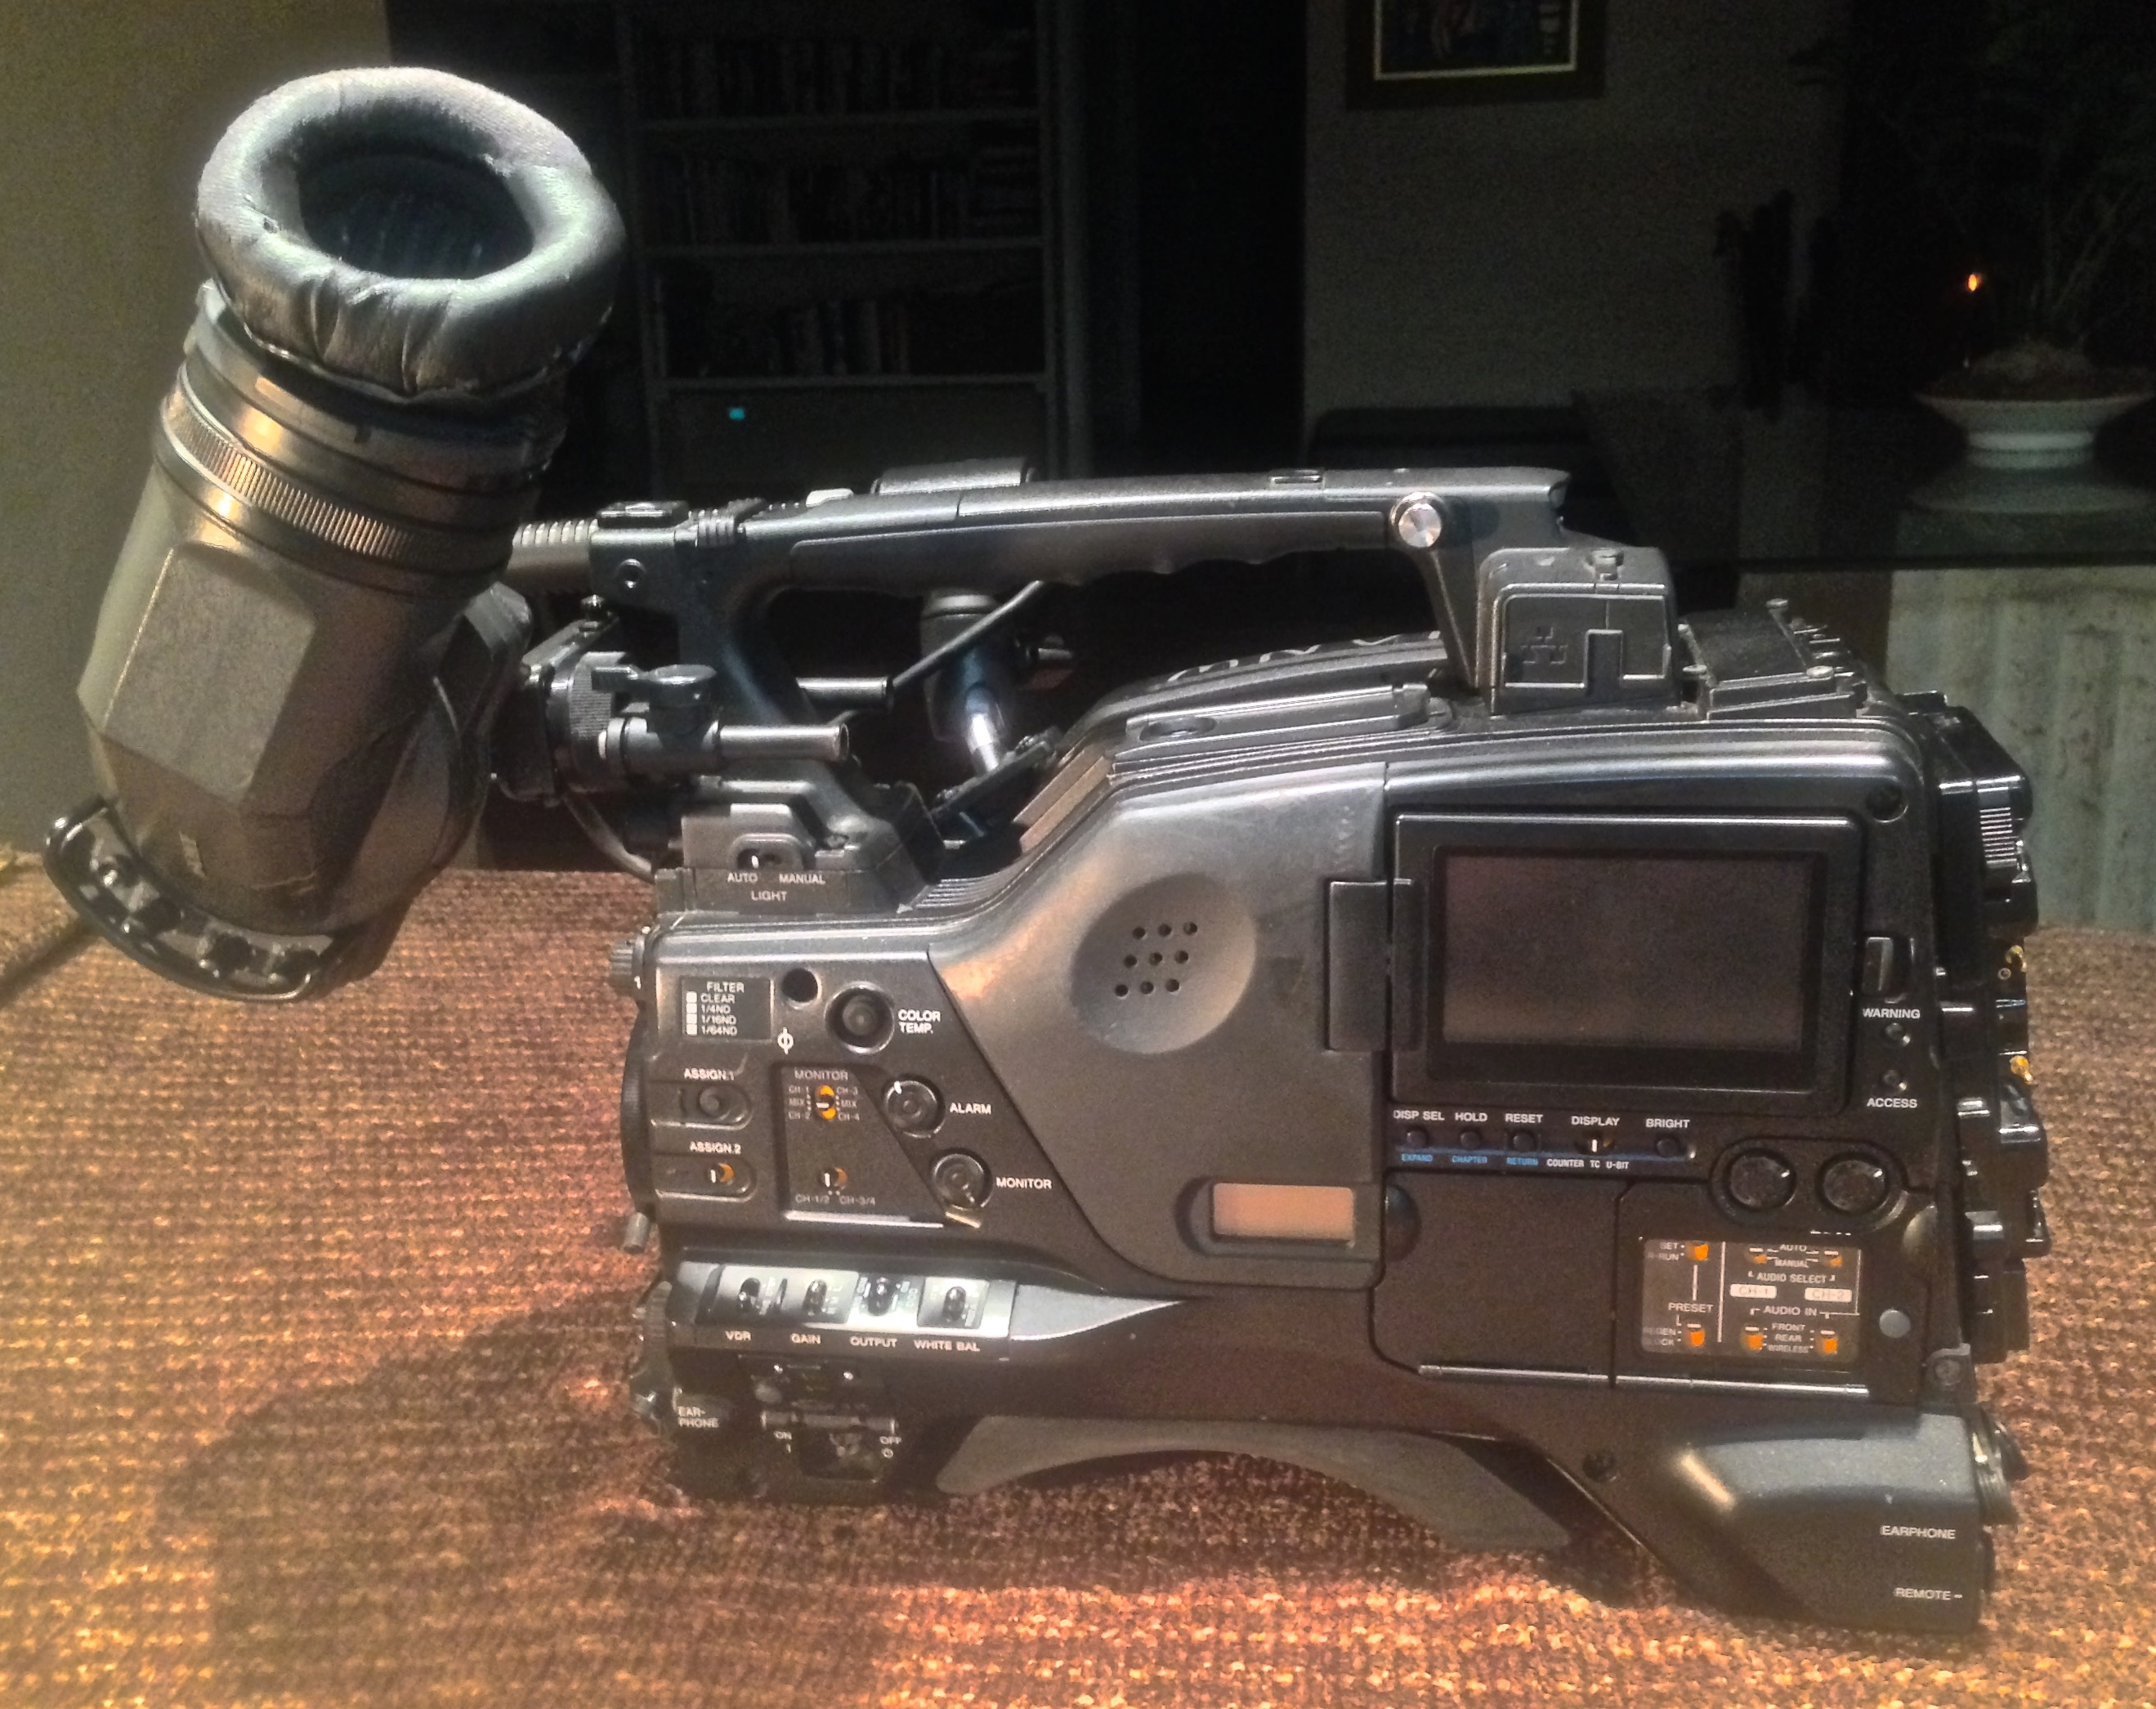 sony pdw 700 camcorder sony xdcam camcorder sony professional camcorder rh newprovideo com sony xdcam 700 manual sony pdw 700 user manual